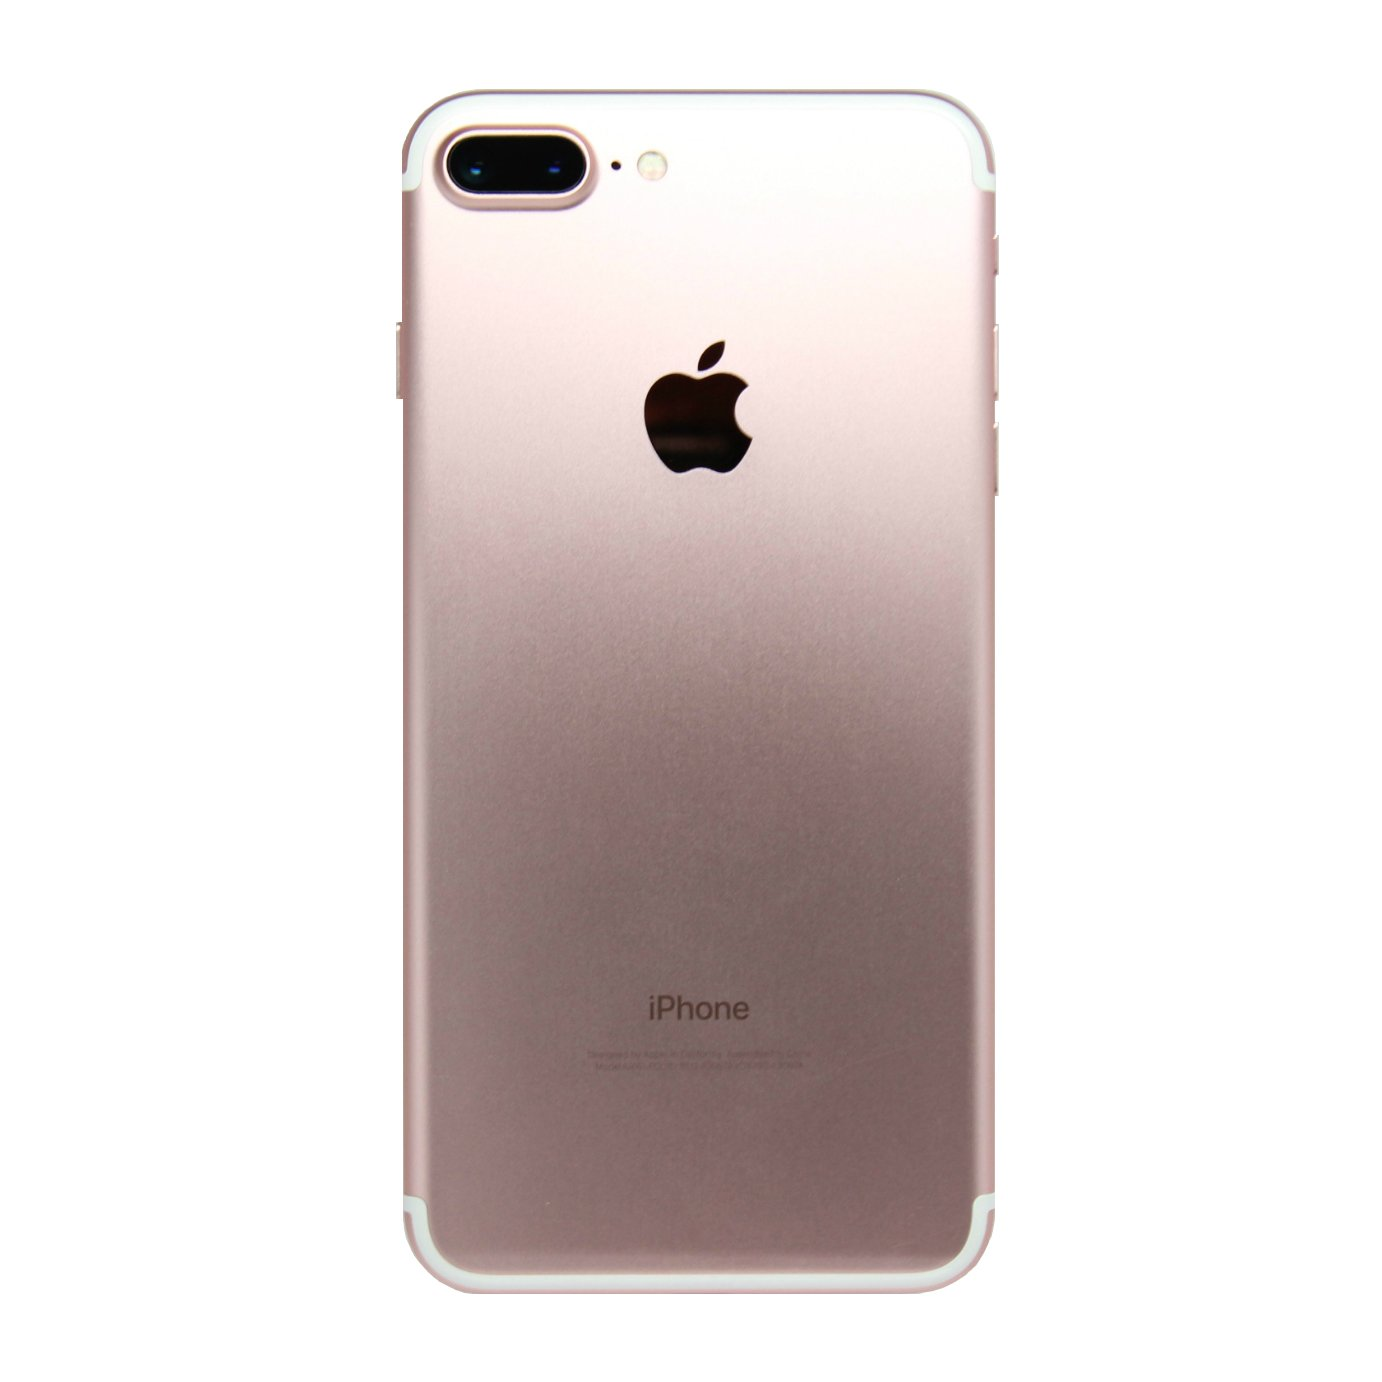 Apple iPhone 7 Plus, GSM Unlocked, 128GB - Rose Gold (Certified Refurbished) by Apple (Image #2)